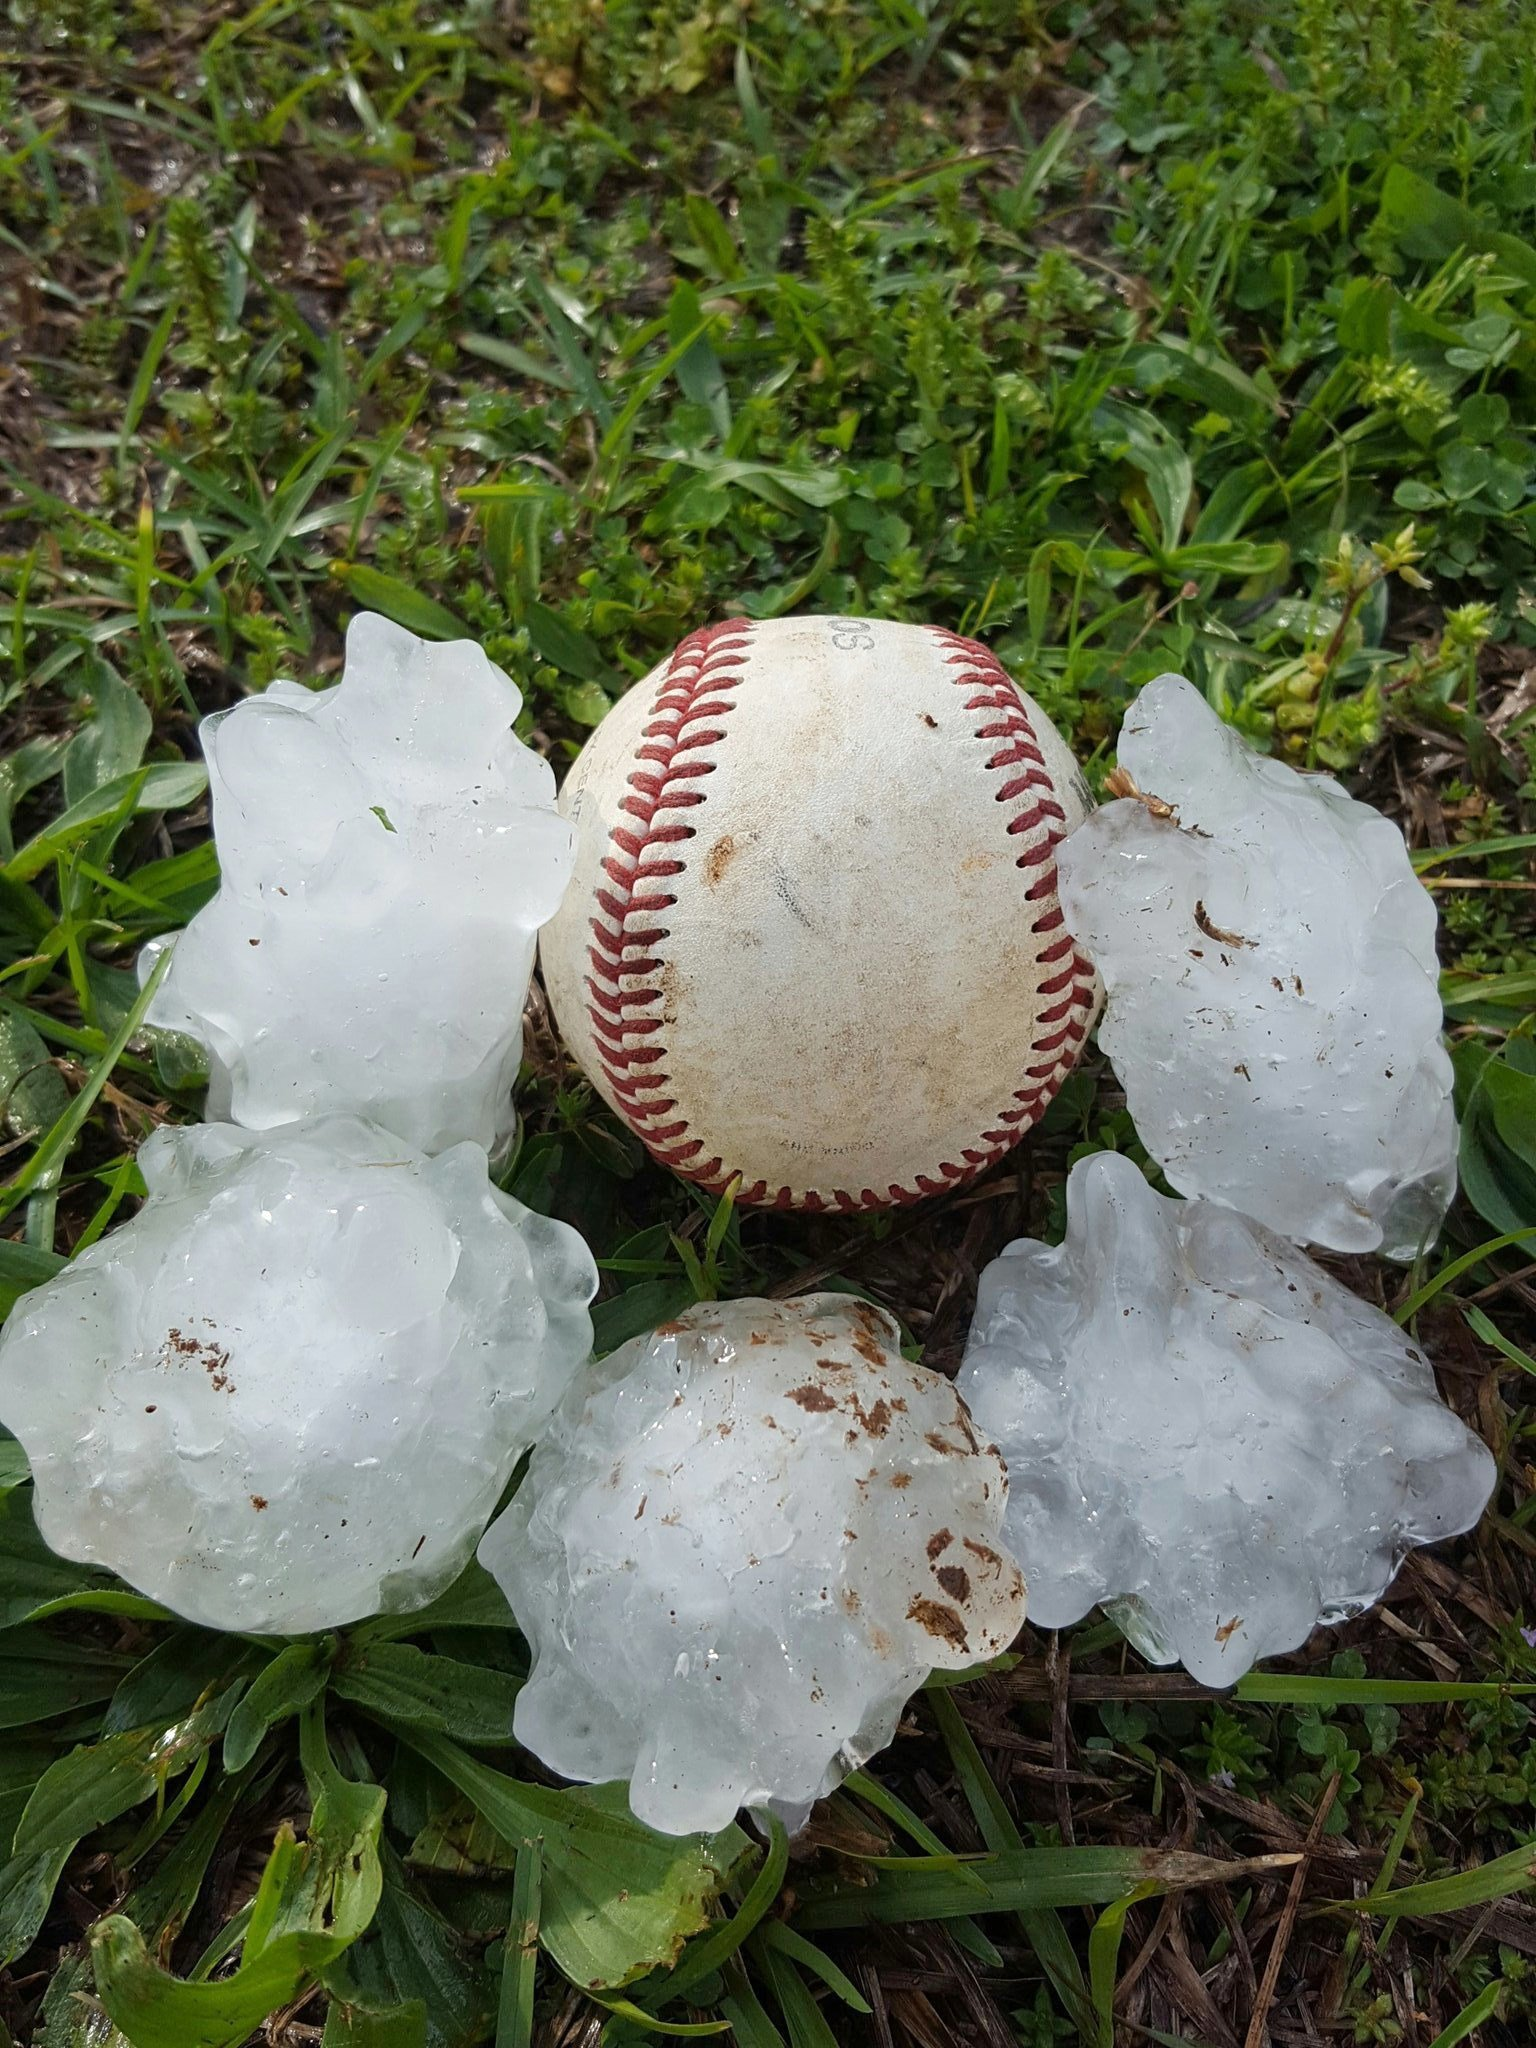 This photo provided by Mitch Sparks shows pieces of hail placed next to a baseball after they fell during a storm in Munford, Ala., Wednesday, April 5, 2017. (Mitch Sparks via AP)